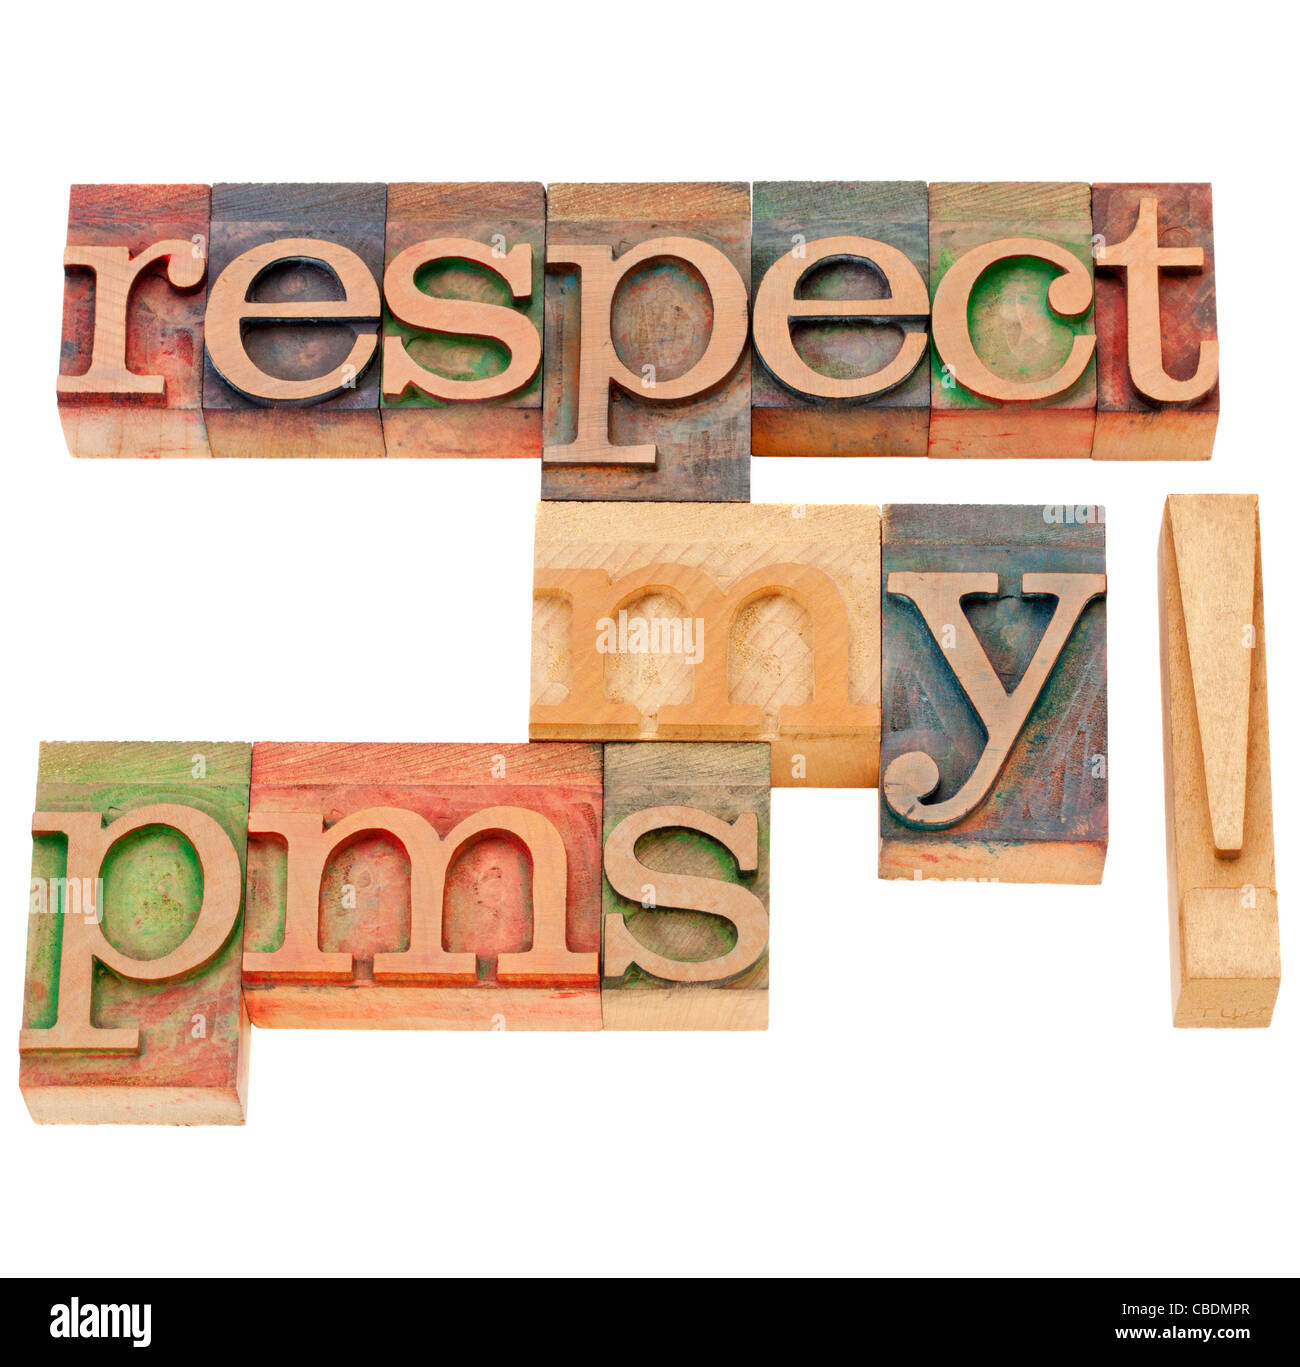 respect my pms (premenstrual syndrome) - isolated text in vintage wood letterpress printing blocks Stock Photo